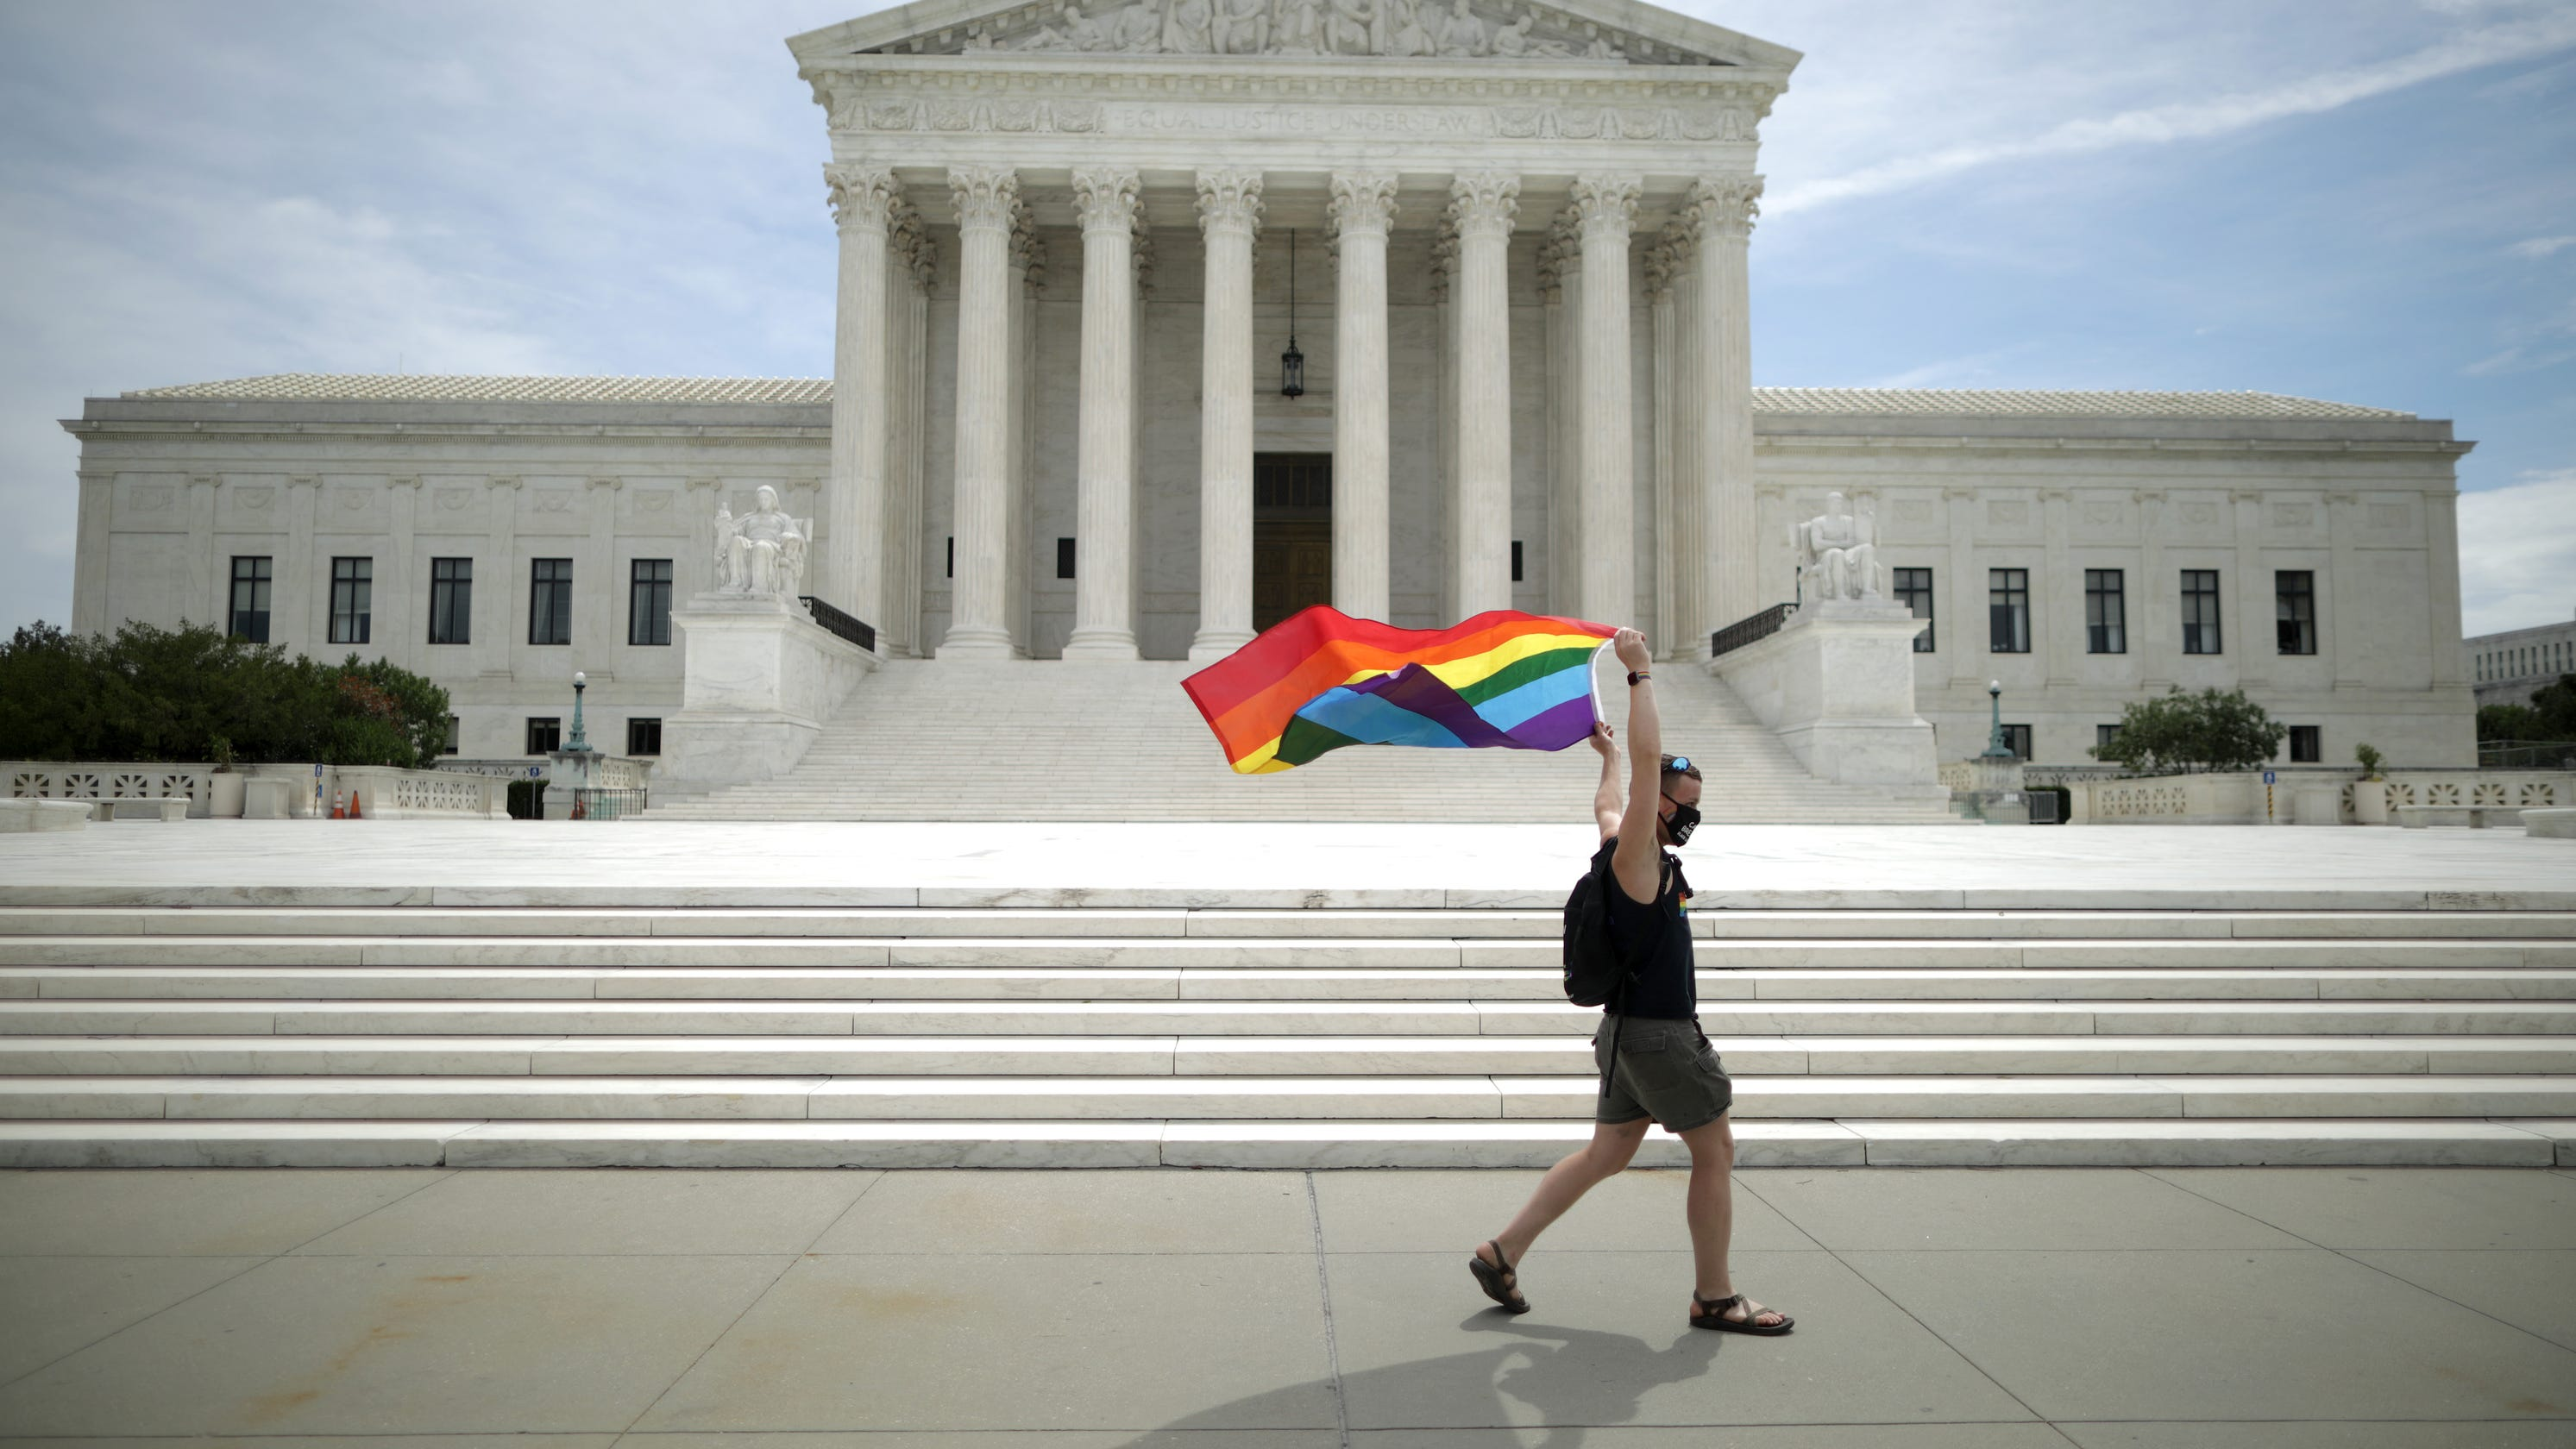 Supreme Court foster care ruling likely to prompt more tests of religion vs. LGBTQ rights